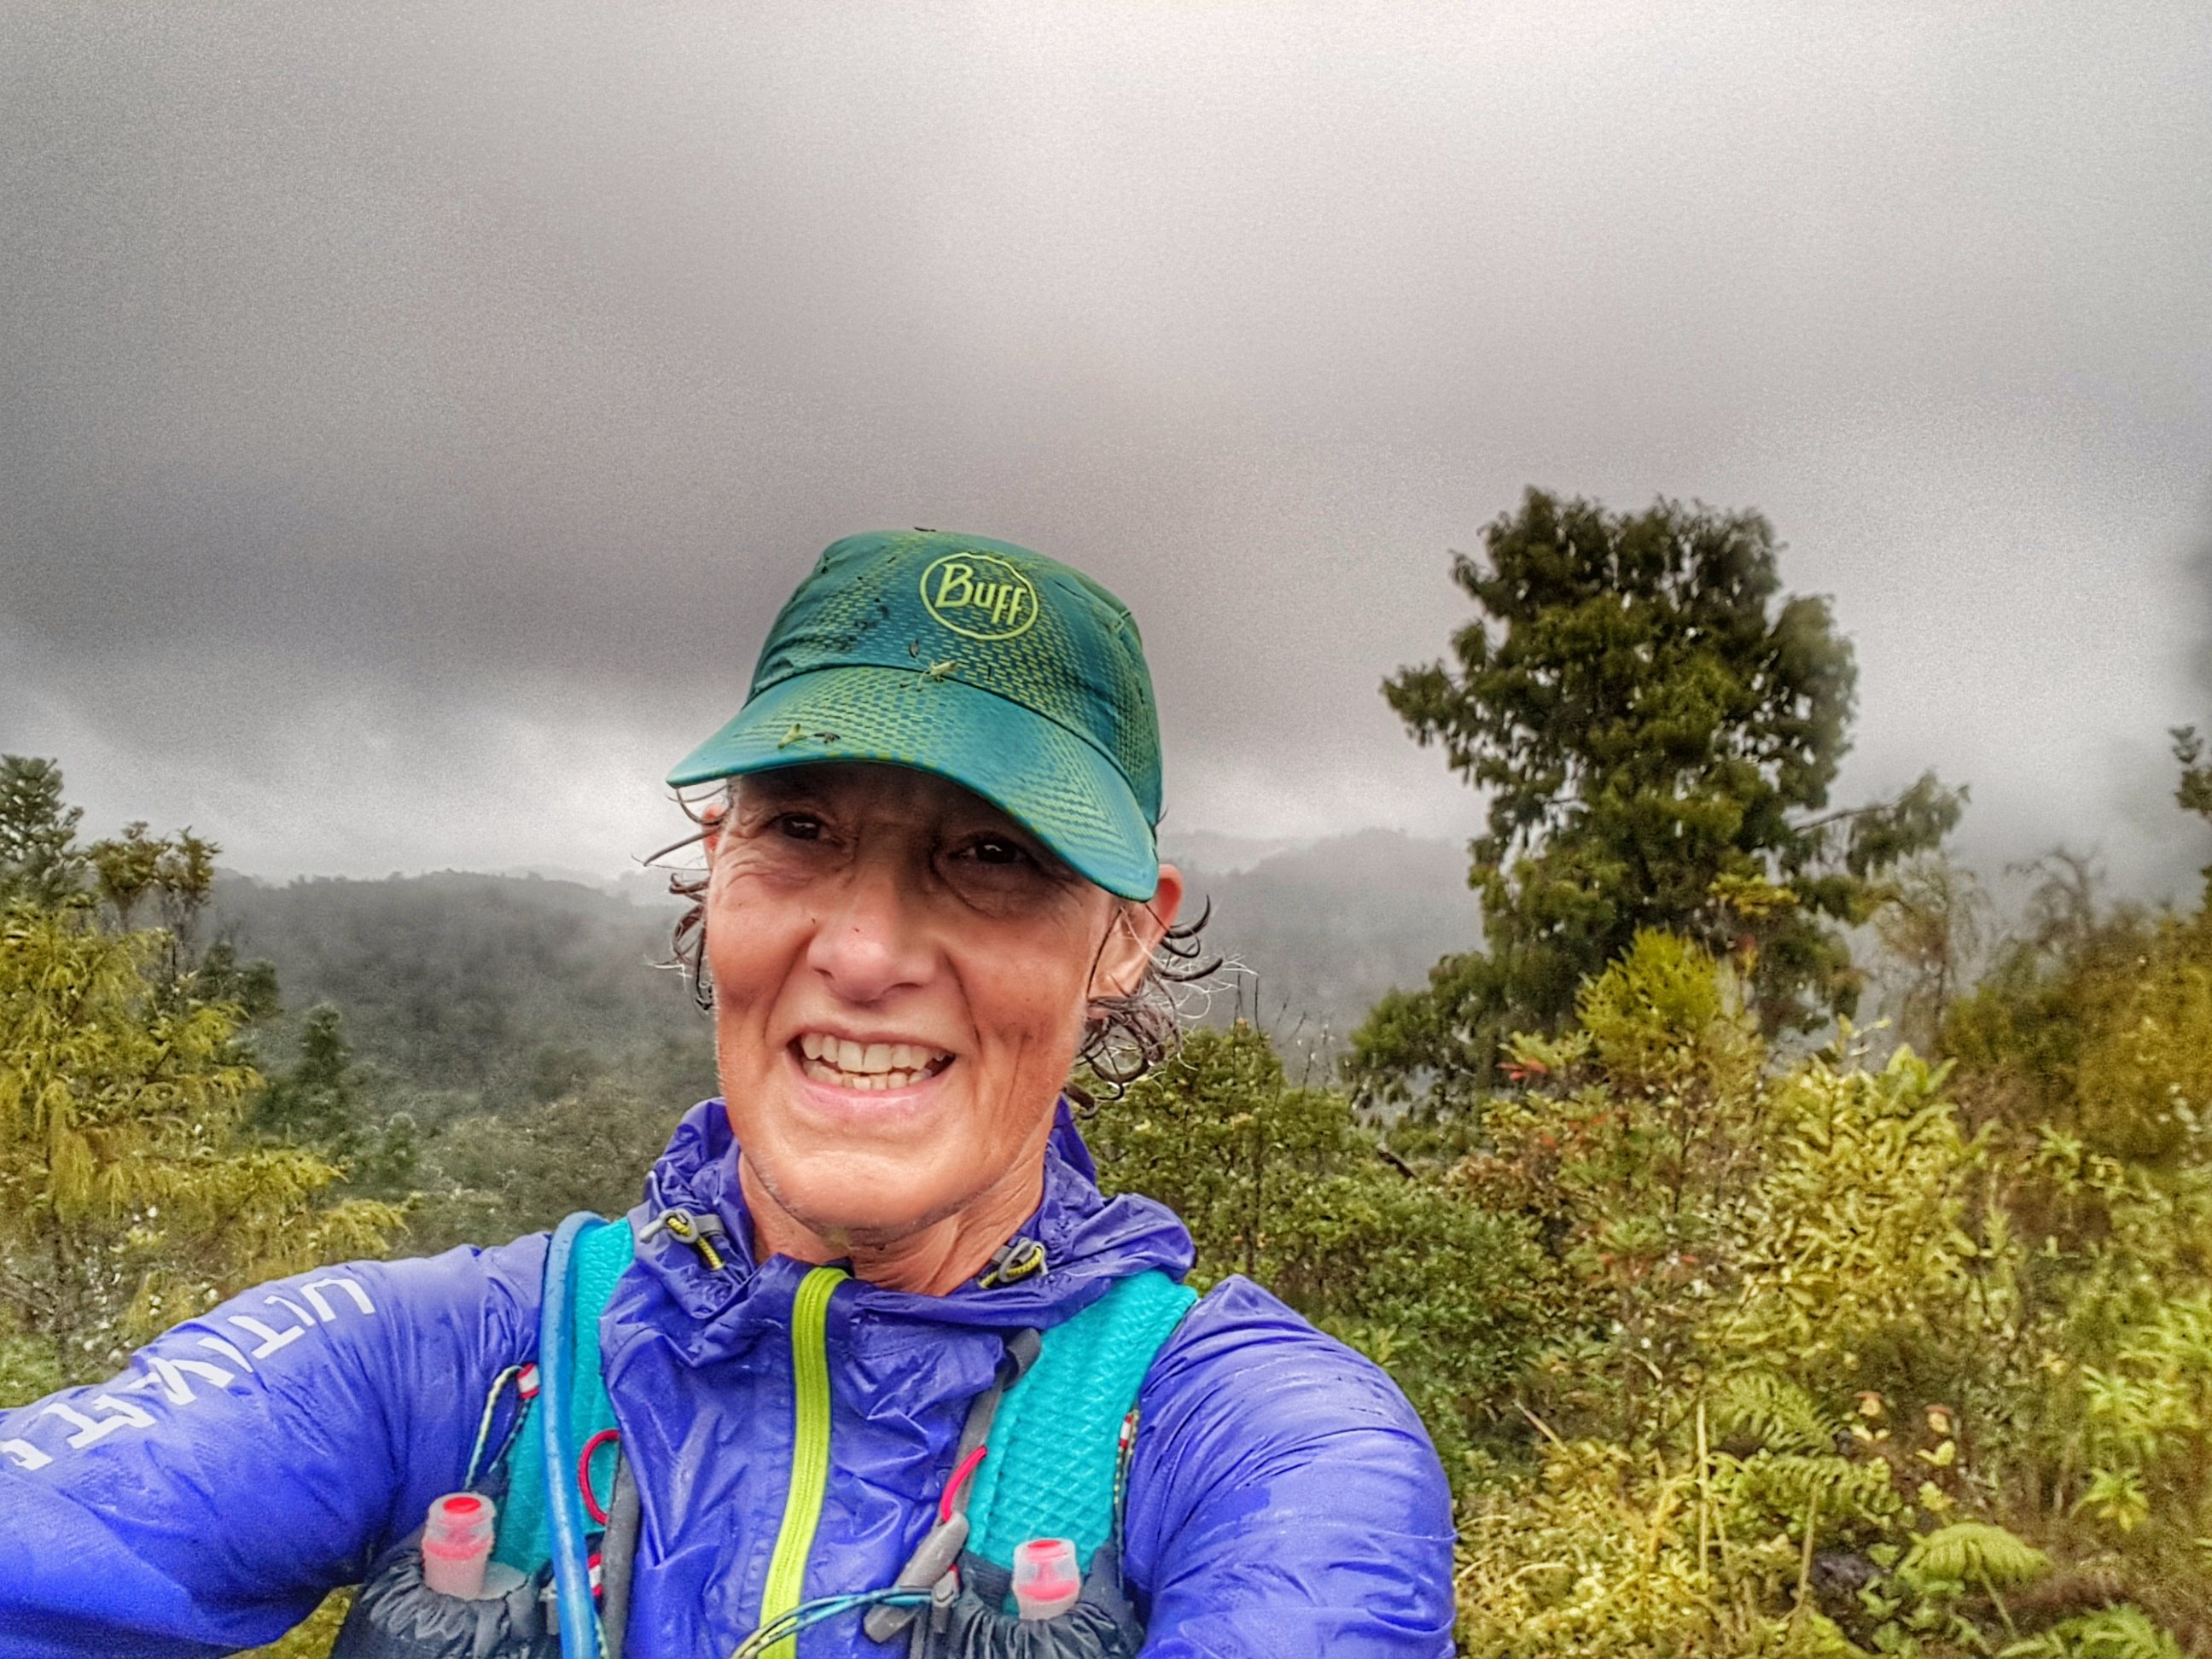 female trailrunner, wearing turquoise cap and purple rain jacket. Self portrait at the top of a hill in the rain with dark clouds and forested valley in the background